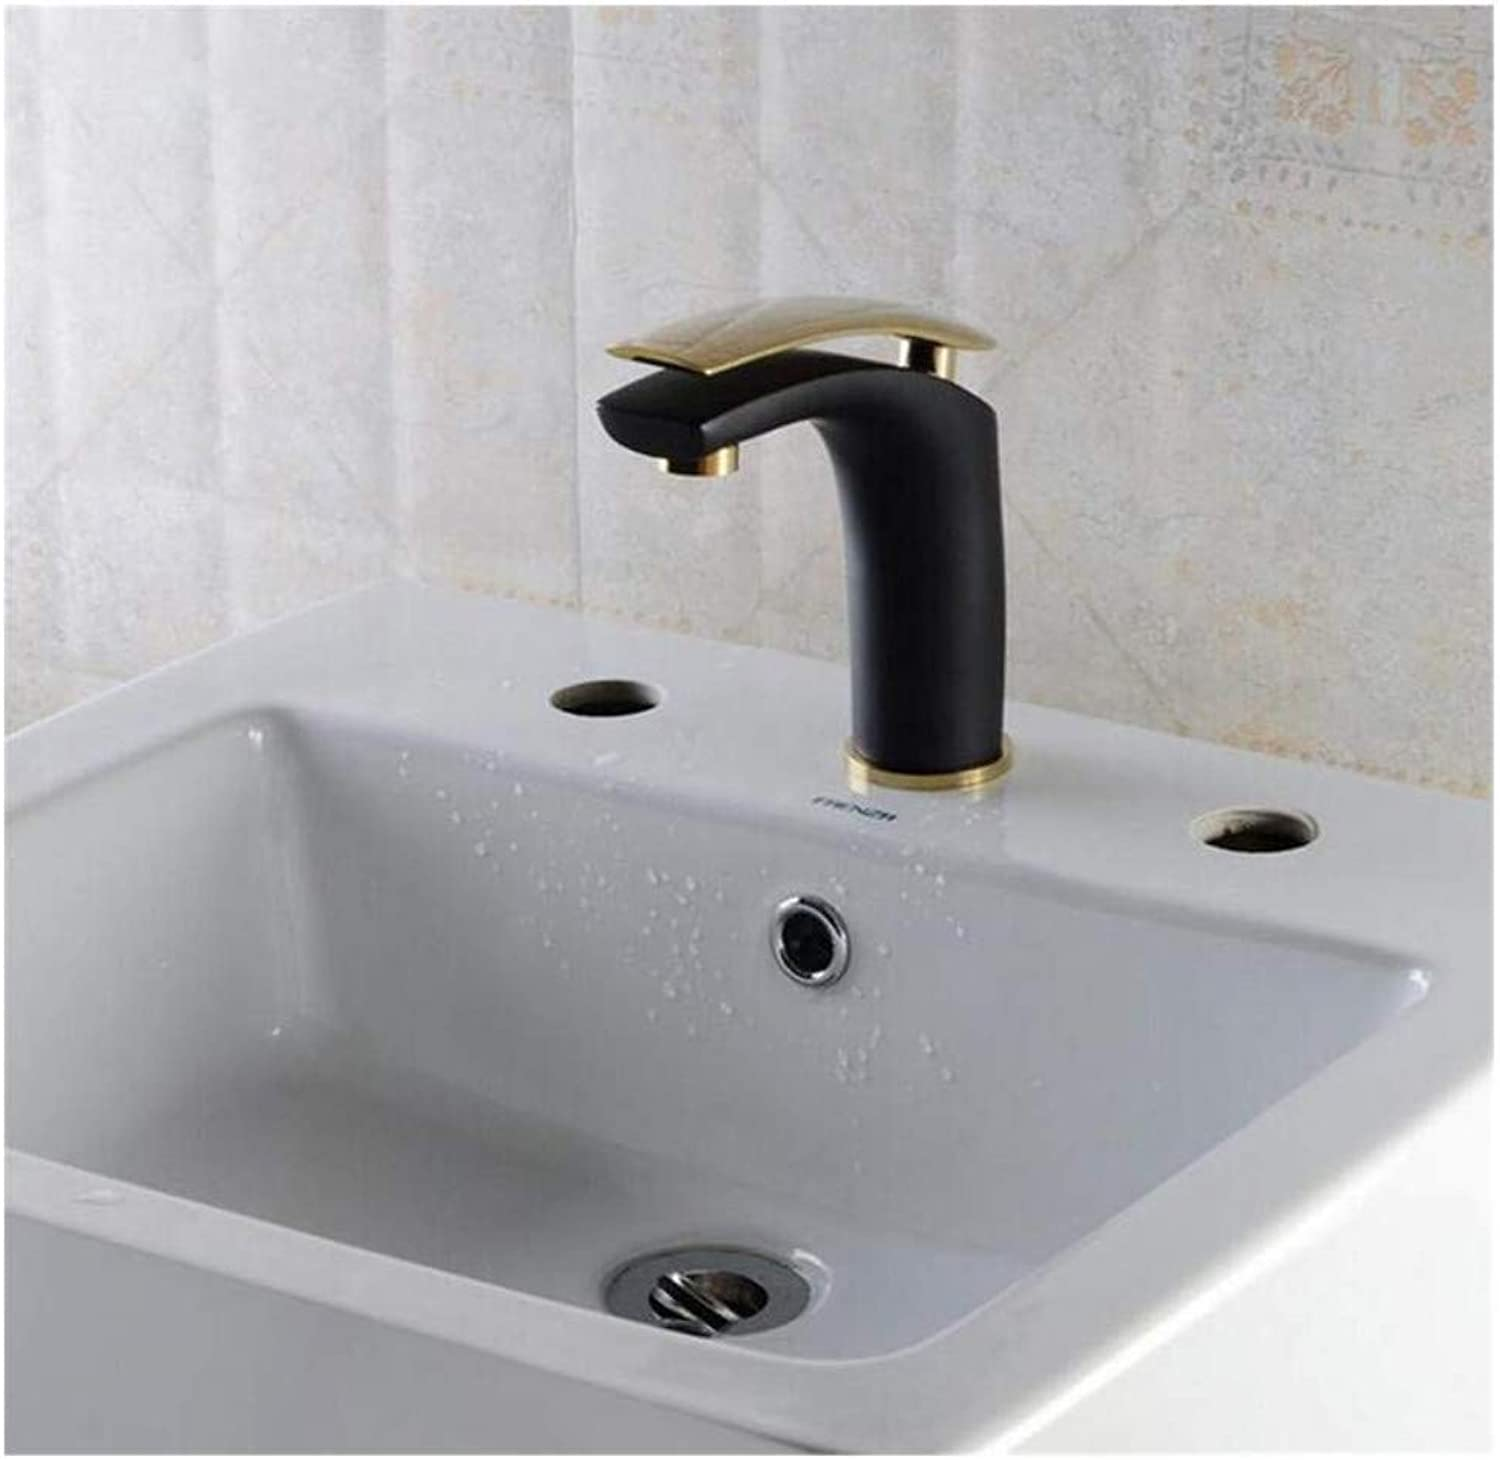 Modern Double Basin Sink Hot and Cold Water Faucet Handle Sink Taps Bathroom Basin Faucet Mixer Tap Single